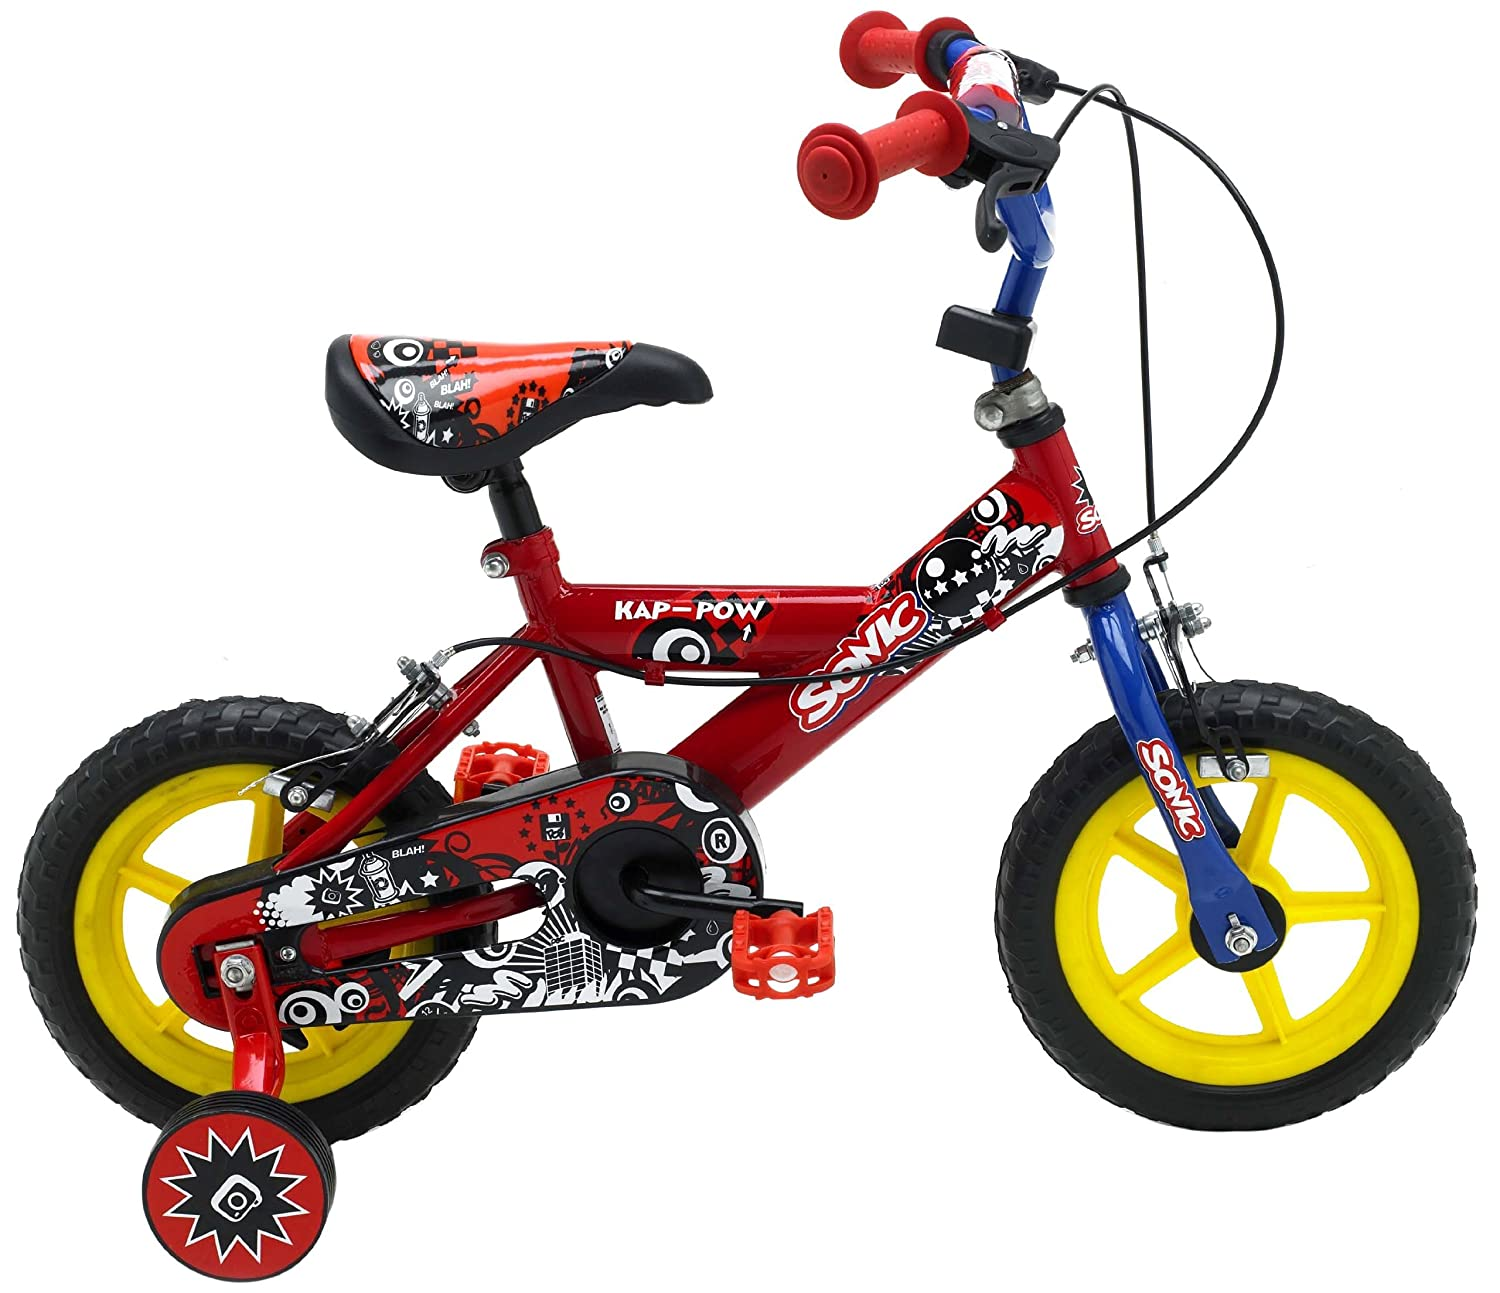 Bike Pictures For Kids Sonic Kap Pow Boys Bike